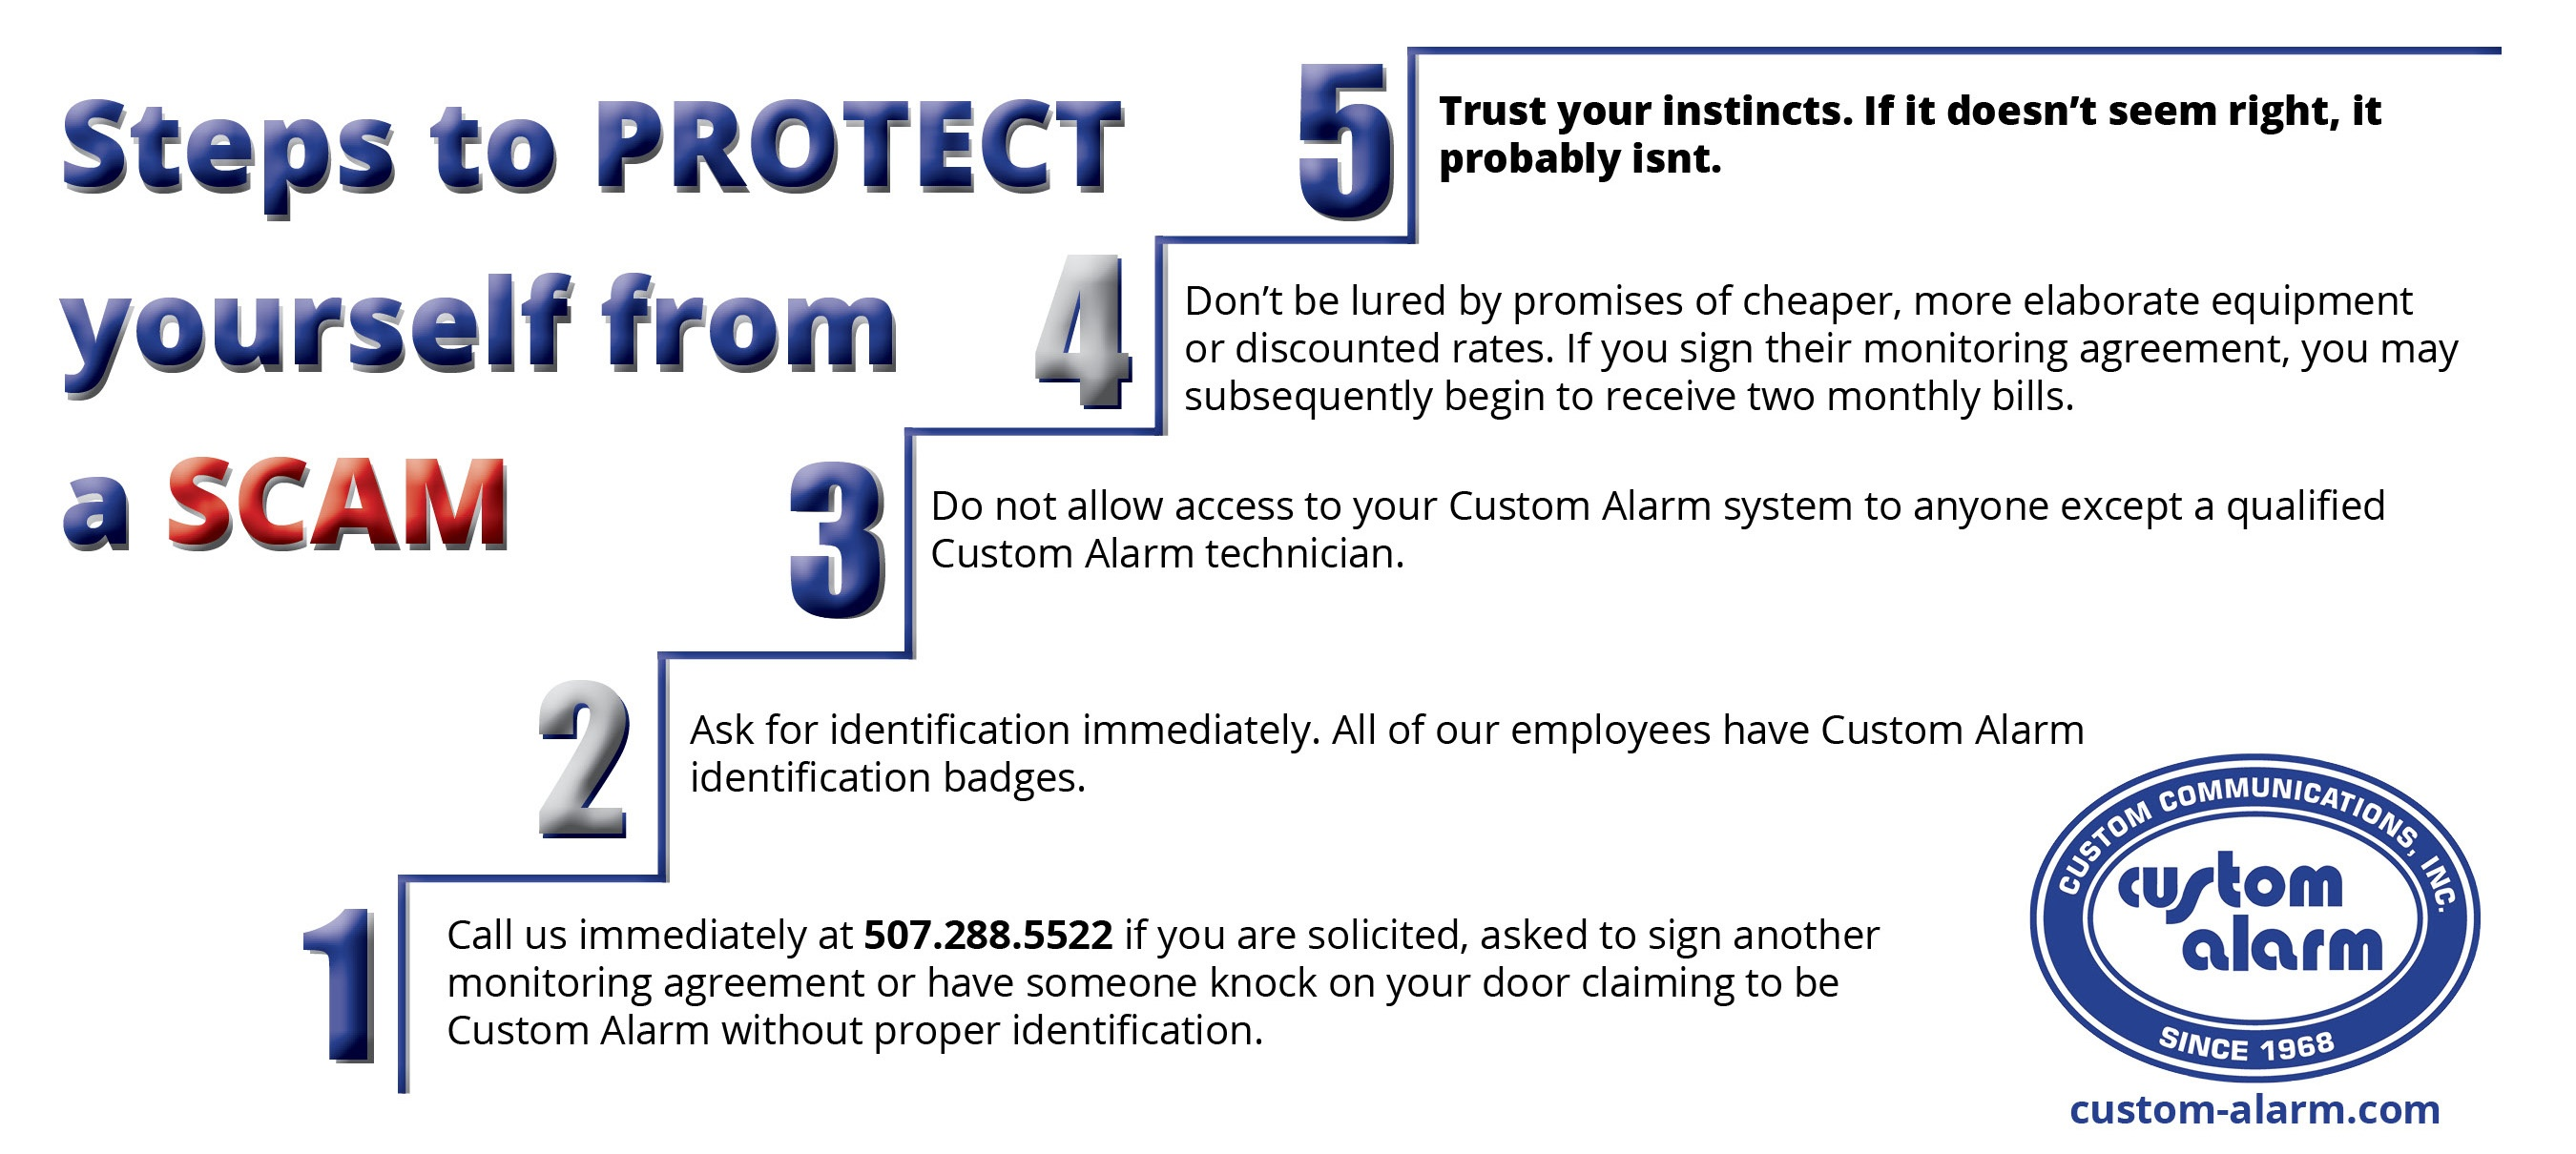 Steps to protect from scam